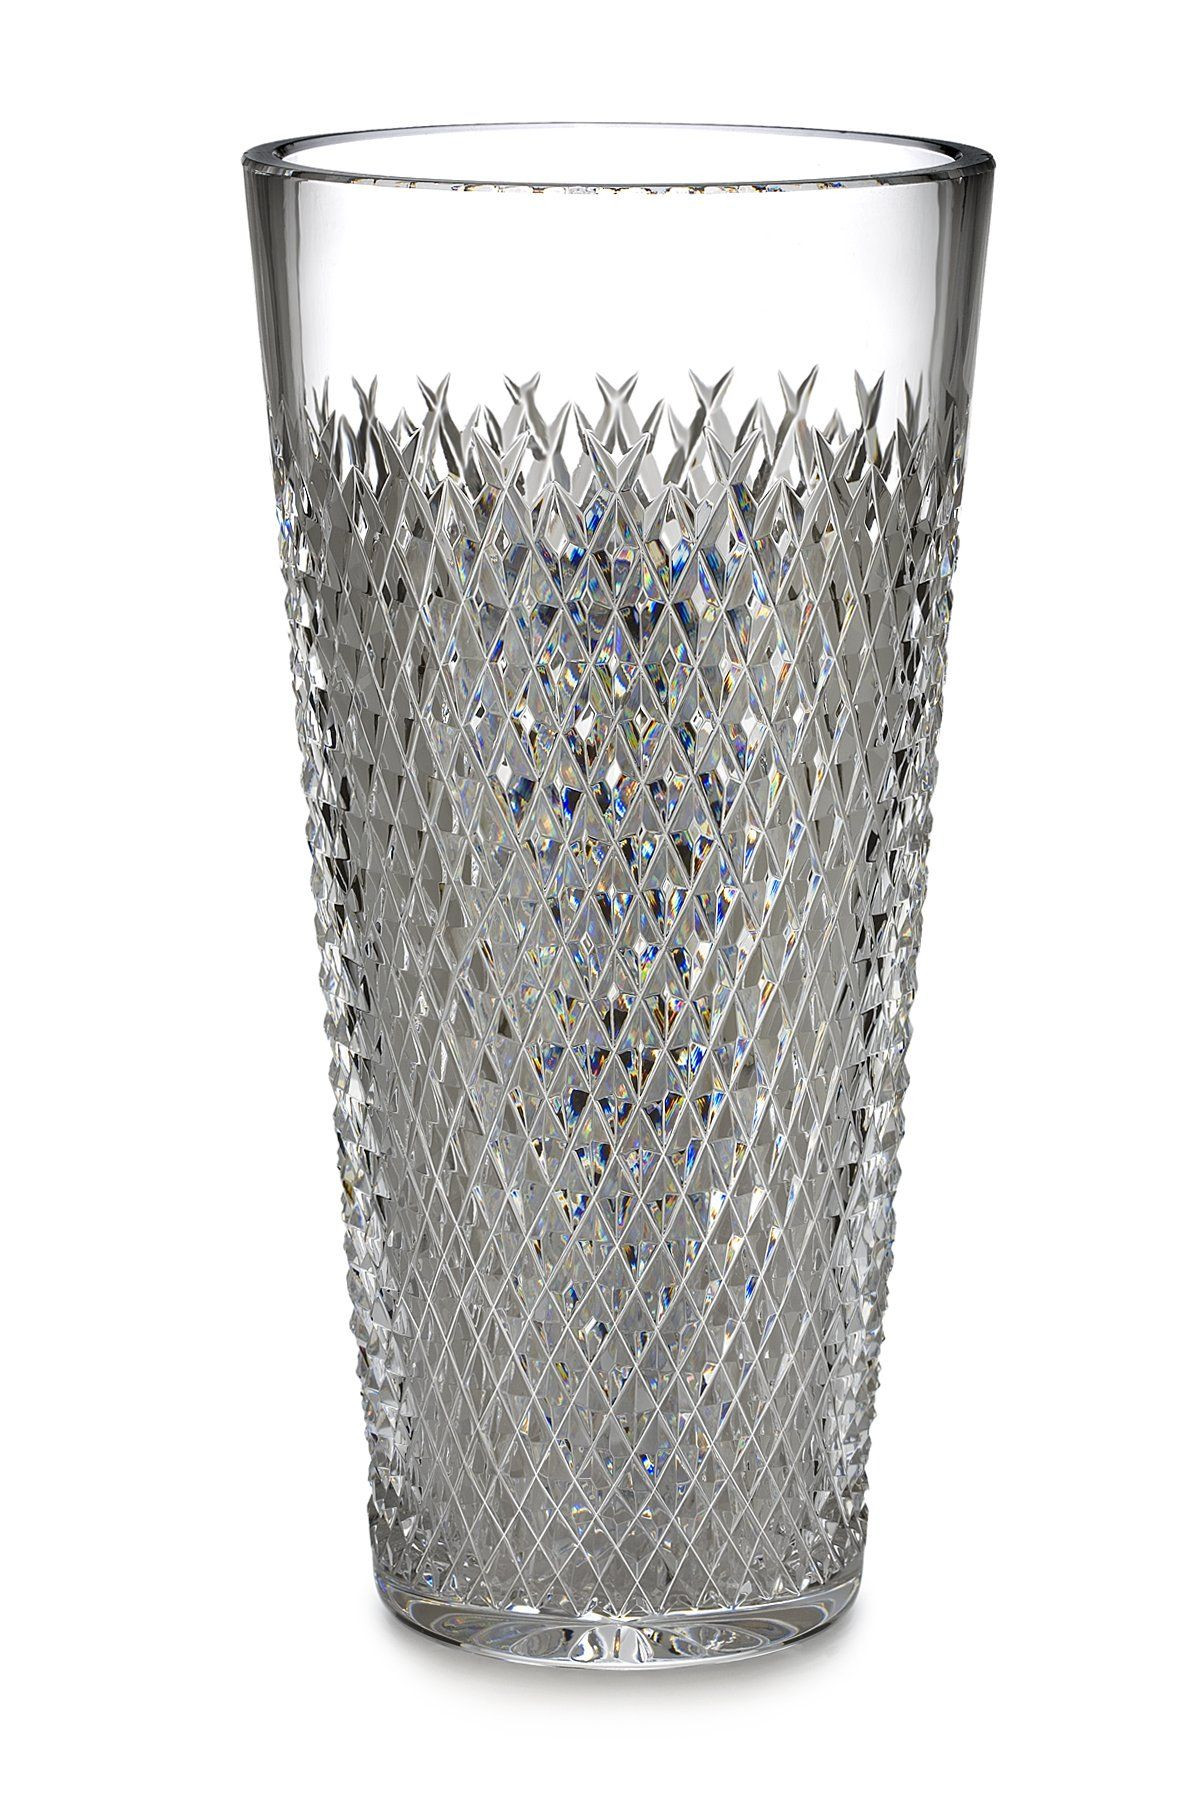 cheap 10 inch cylinder vases of waterford alana 12 inch vase 12 inch vase crystal alana vases intended for waterford alana 12 inch vase 12 inch vase crystal alana